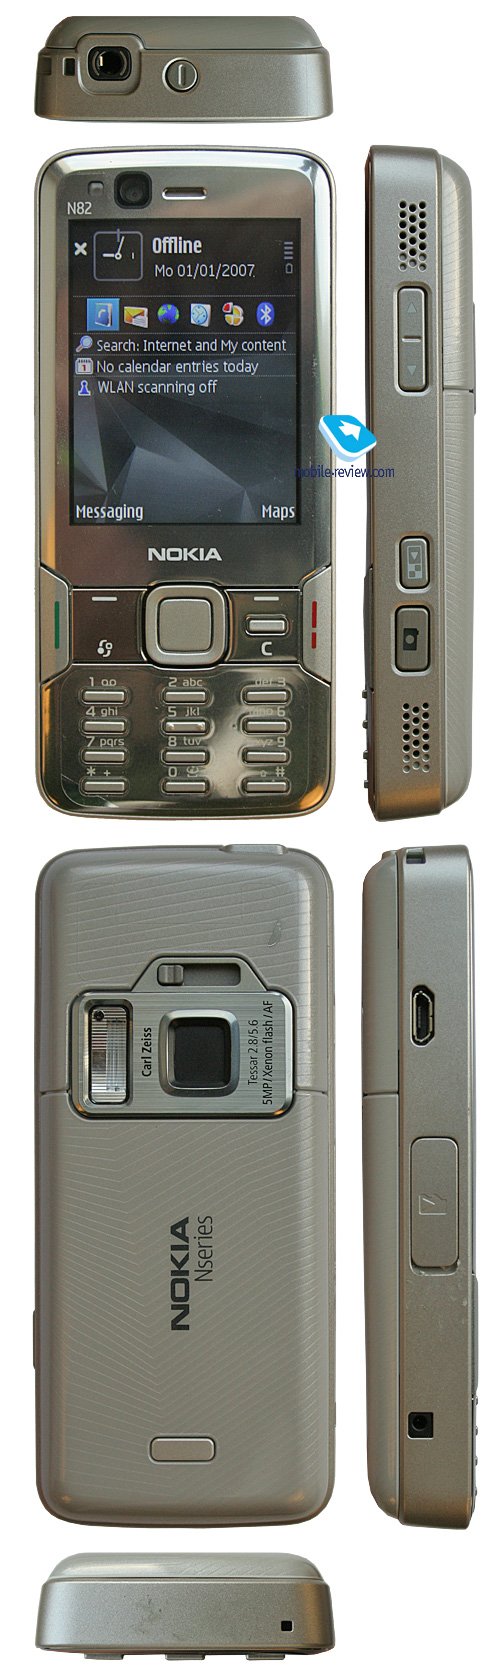 all face Nokia N82 And Sony Ericsson K850i a Close Look